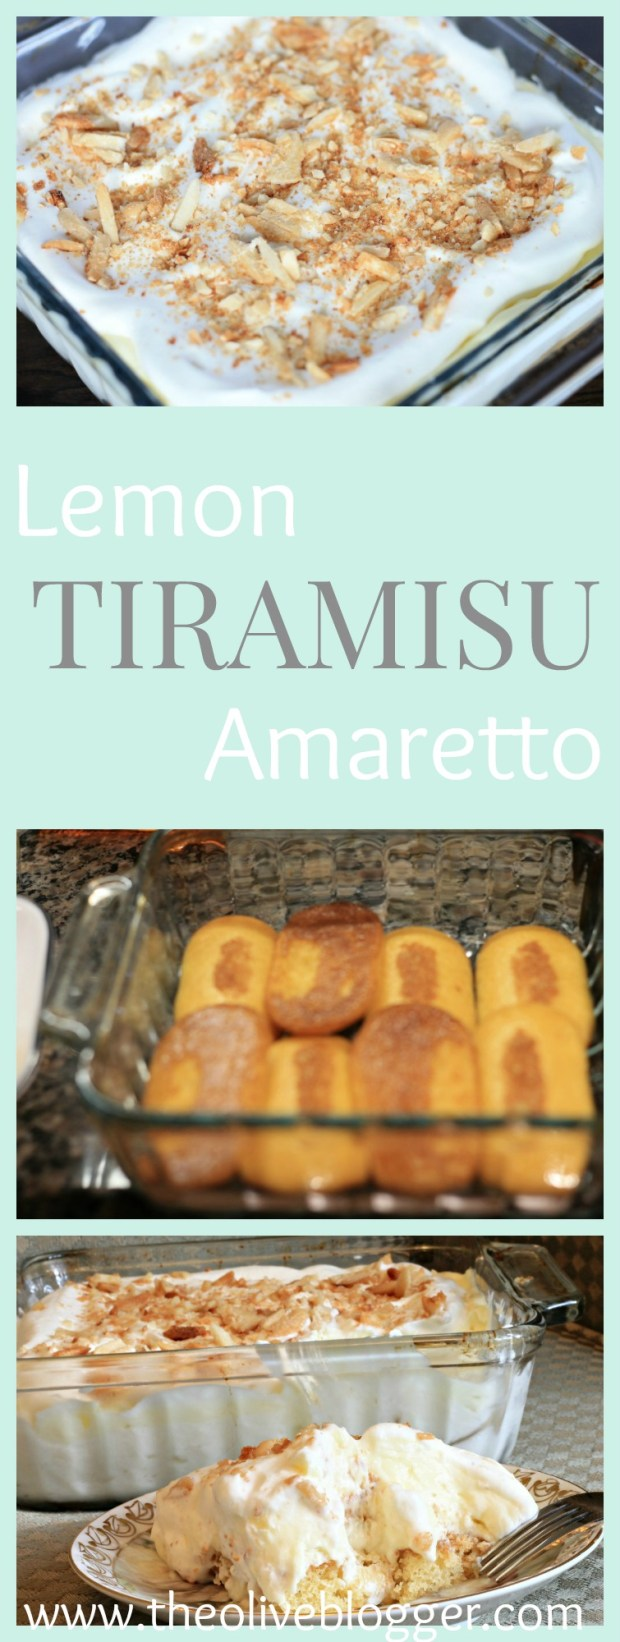 This Lemon Amaretto Tiramisu is super light and fresh tasting, and the addition of the lemon curd is seriously amazing! The cookies are dipped in a simple syrup created with Amaretto perfectly pairing with the sweetness of the mascarpone layer.